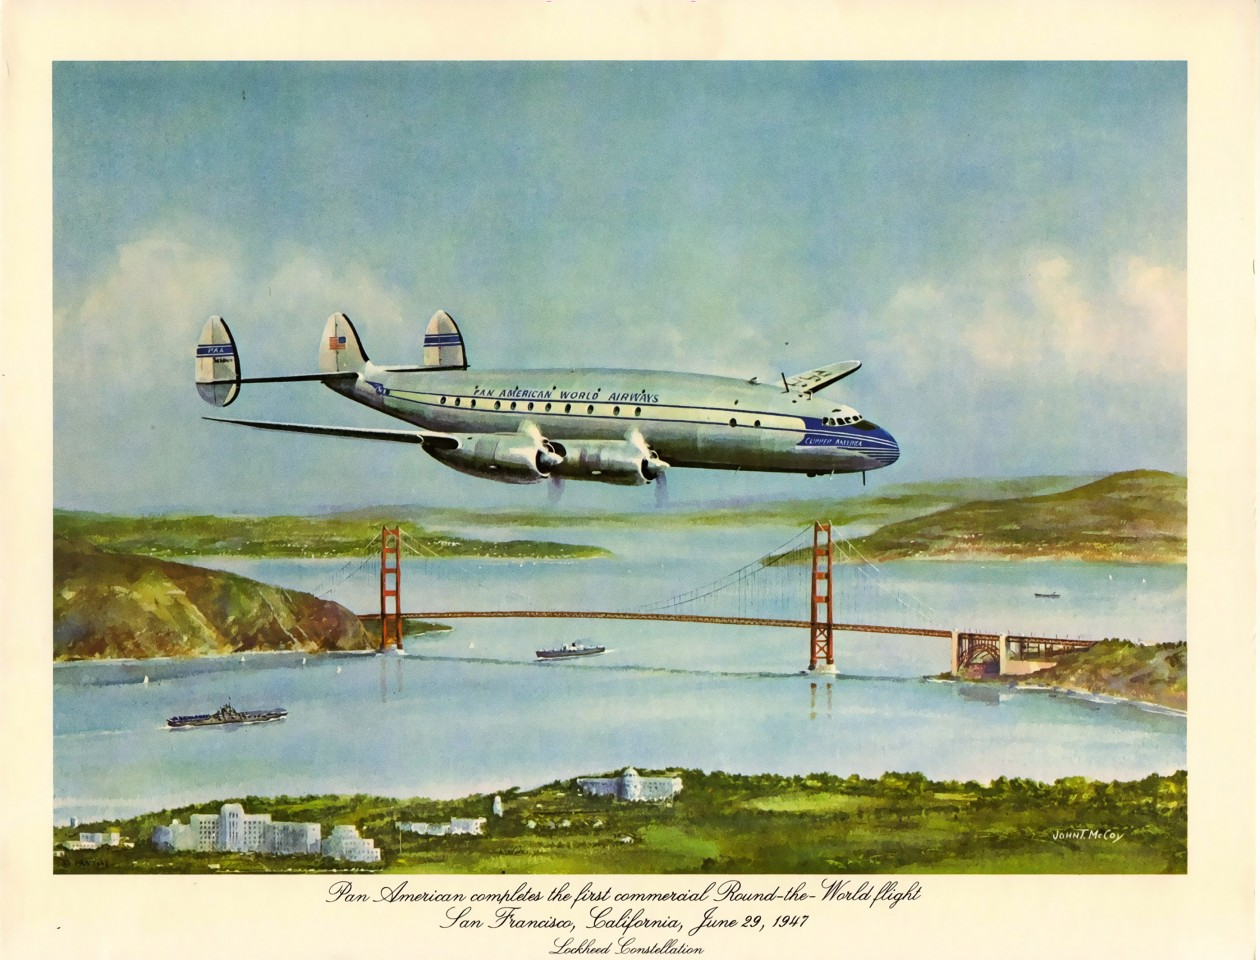 Постер Pan American World Airways - Американские мировые авиалинии